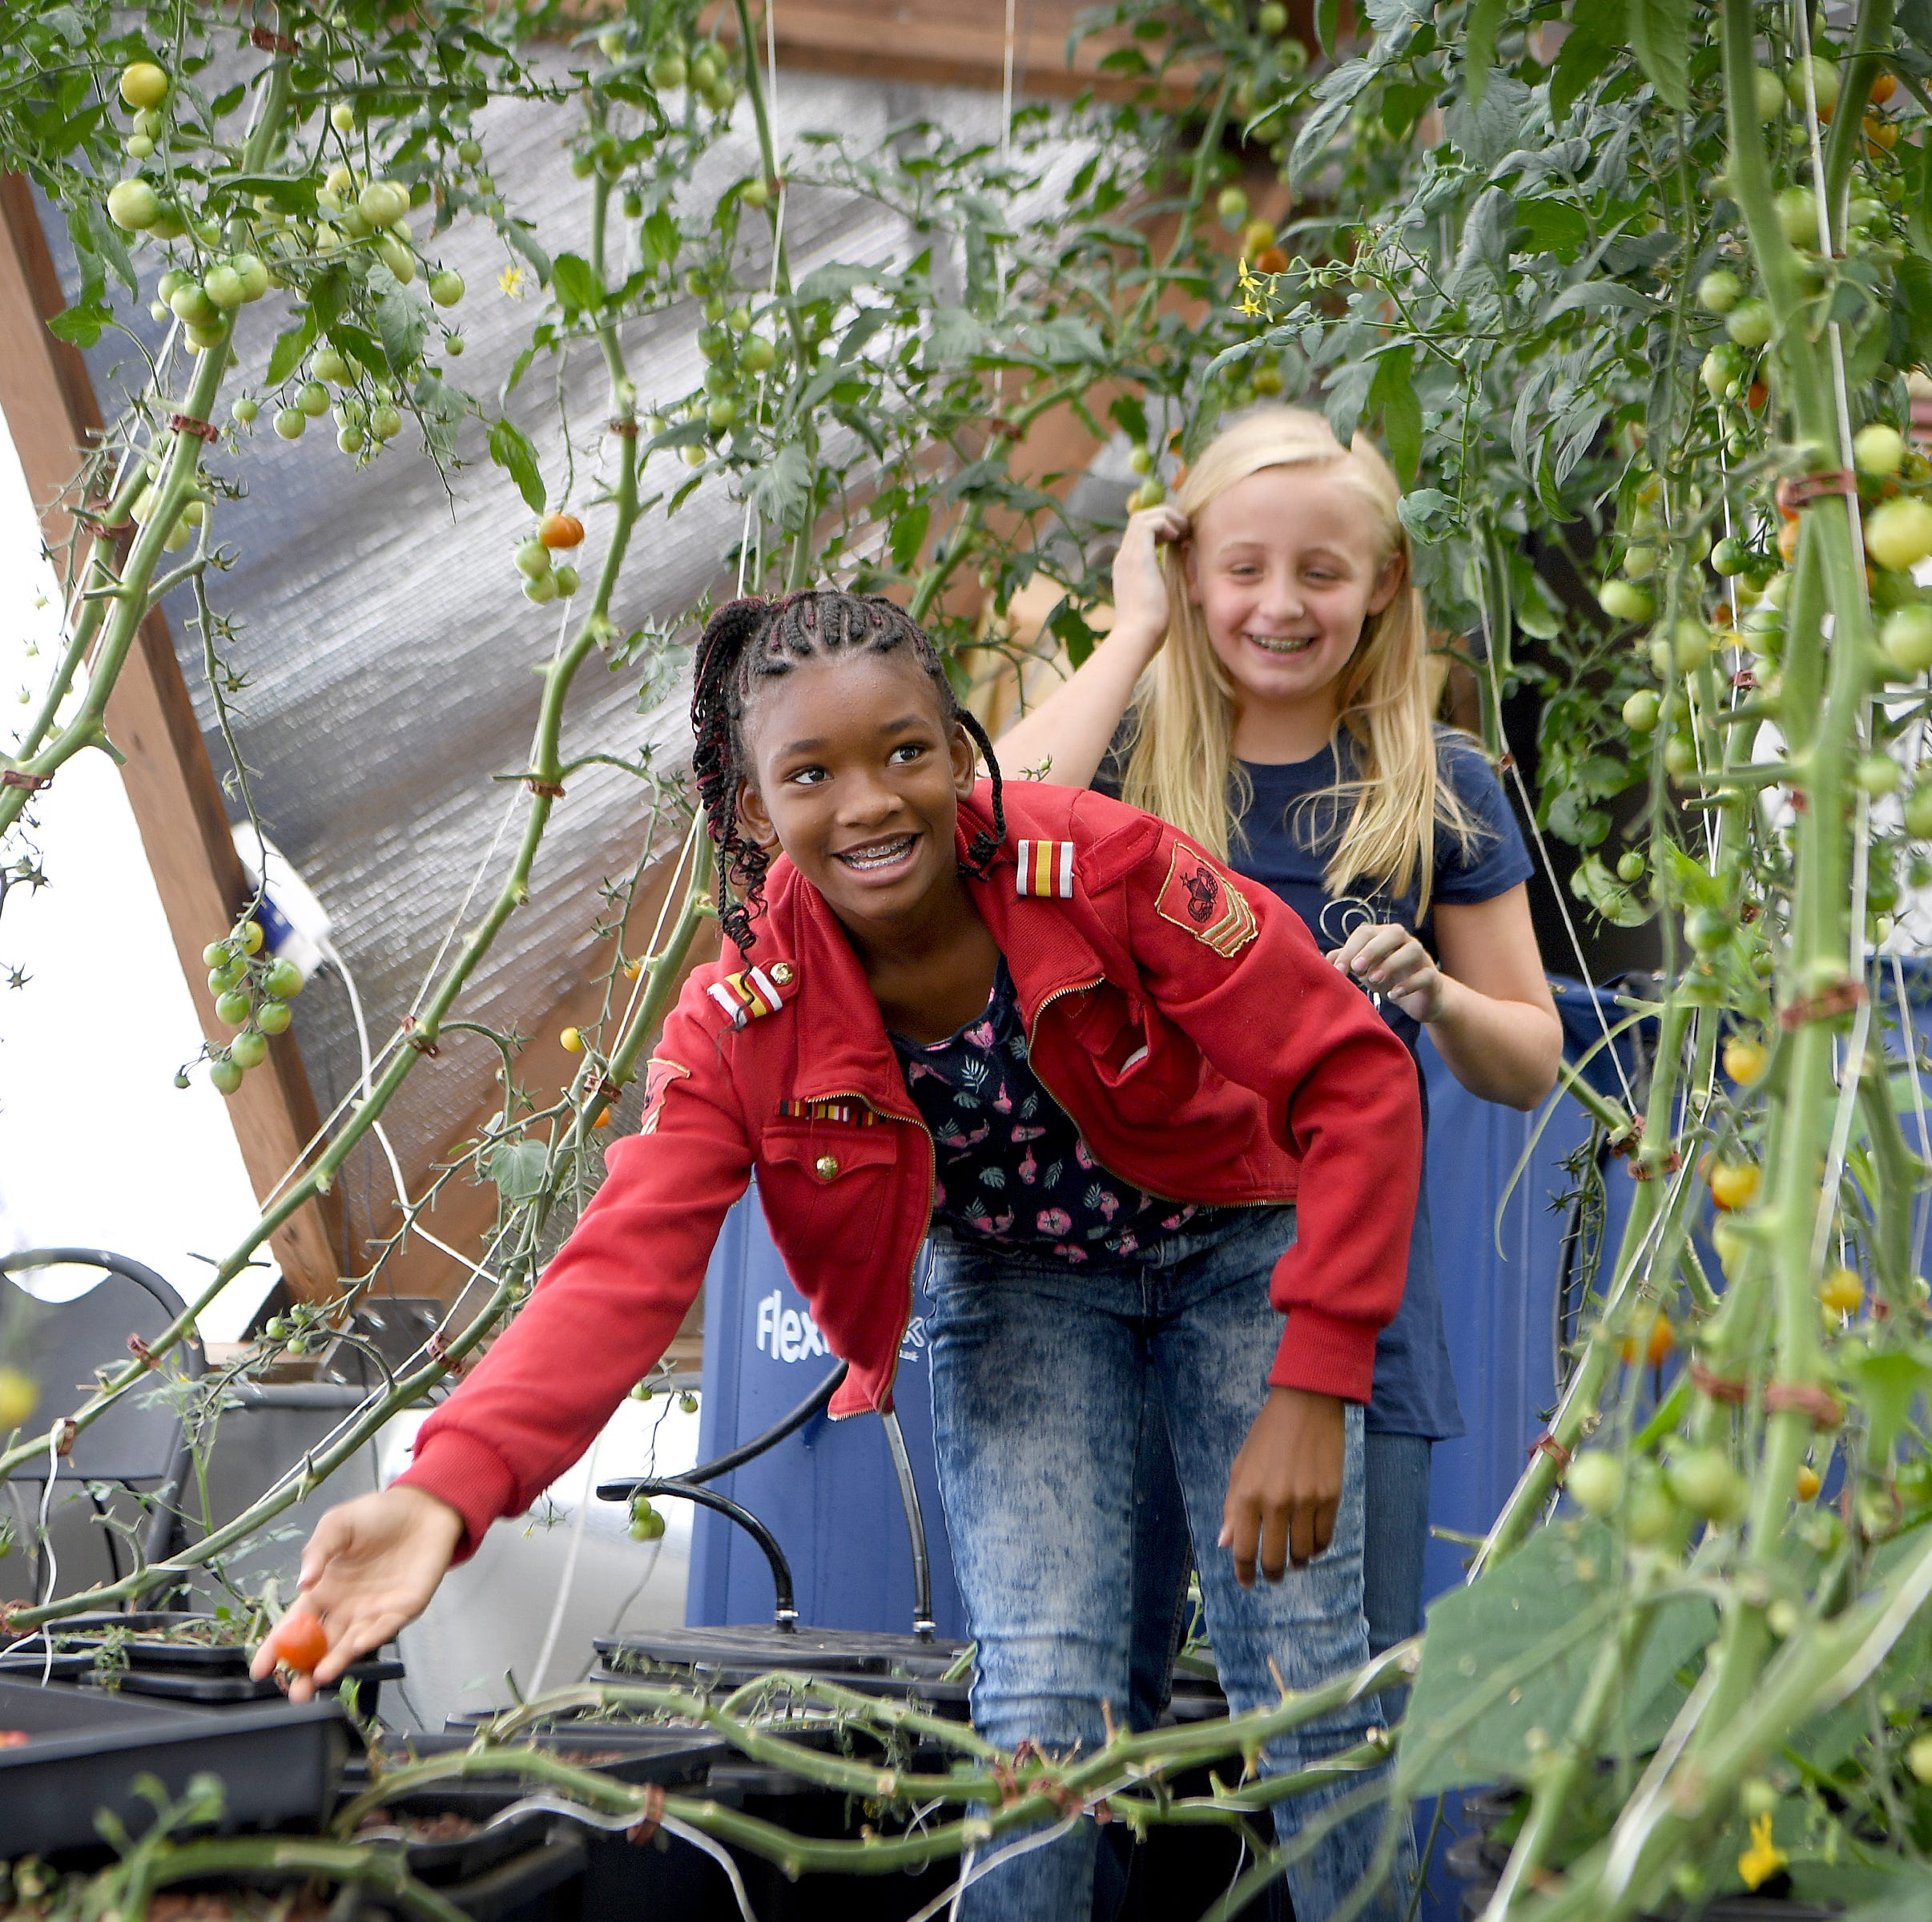 Jameriyah Collins, 11, left, and Kyndal Devlin, 10, pick cherry tomatoes in the Eliada Farms' geodesic grow dome on Thursday, Aug. 9, 2018. The food grown in the dome is served to children in the Eliada cafeteria.